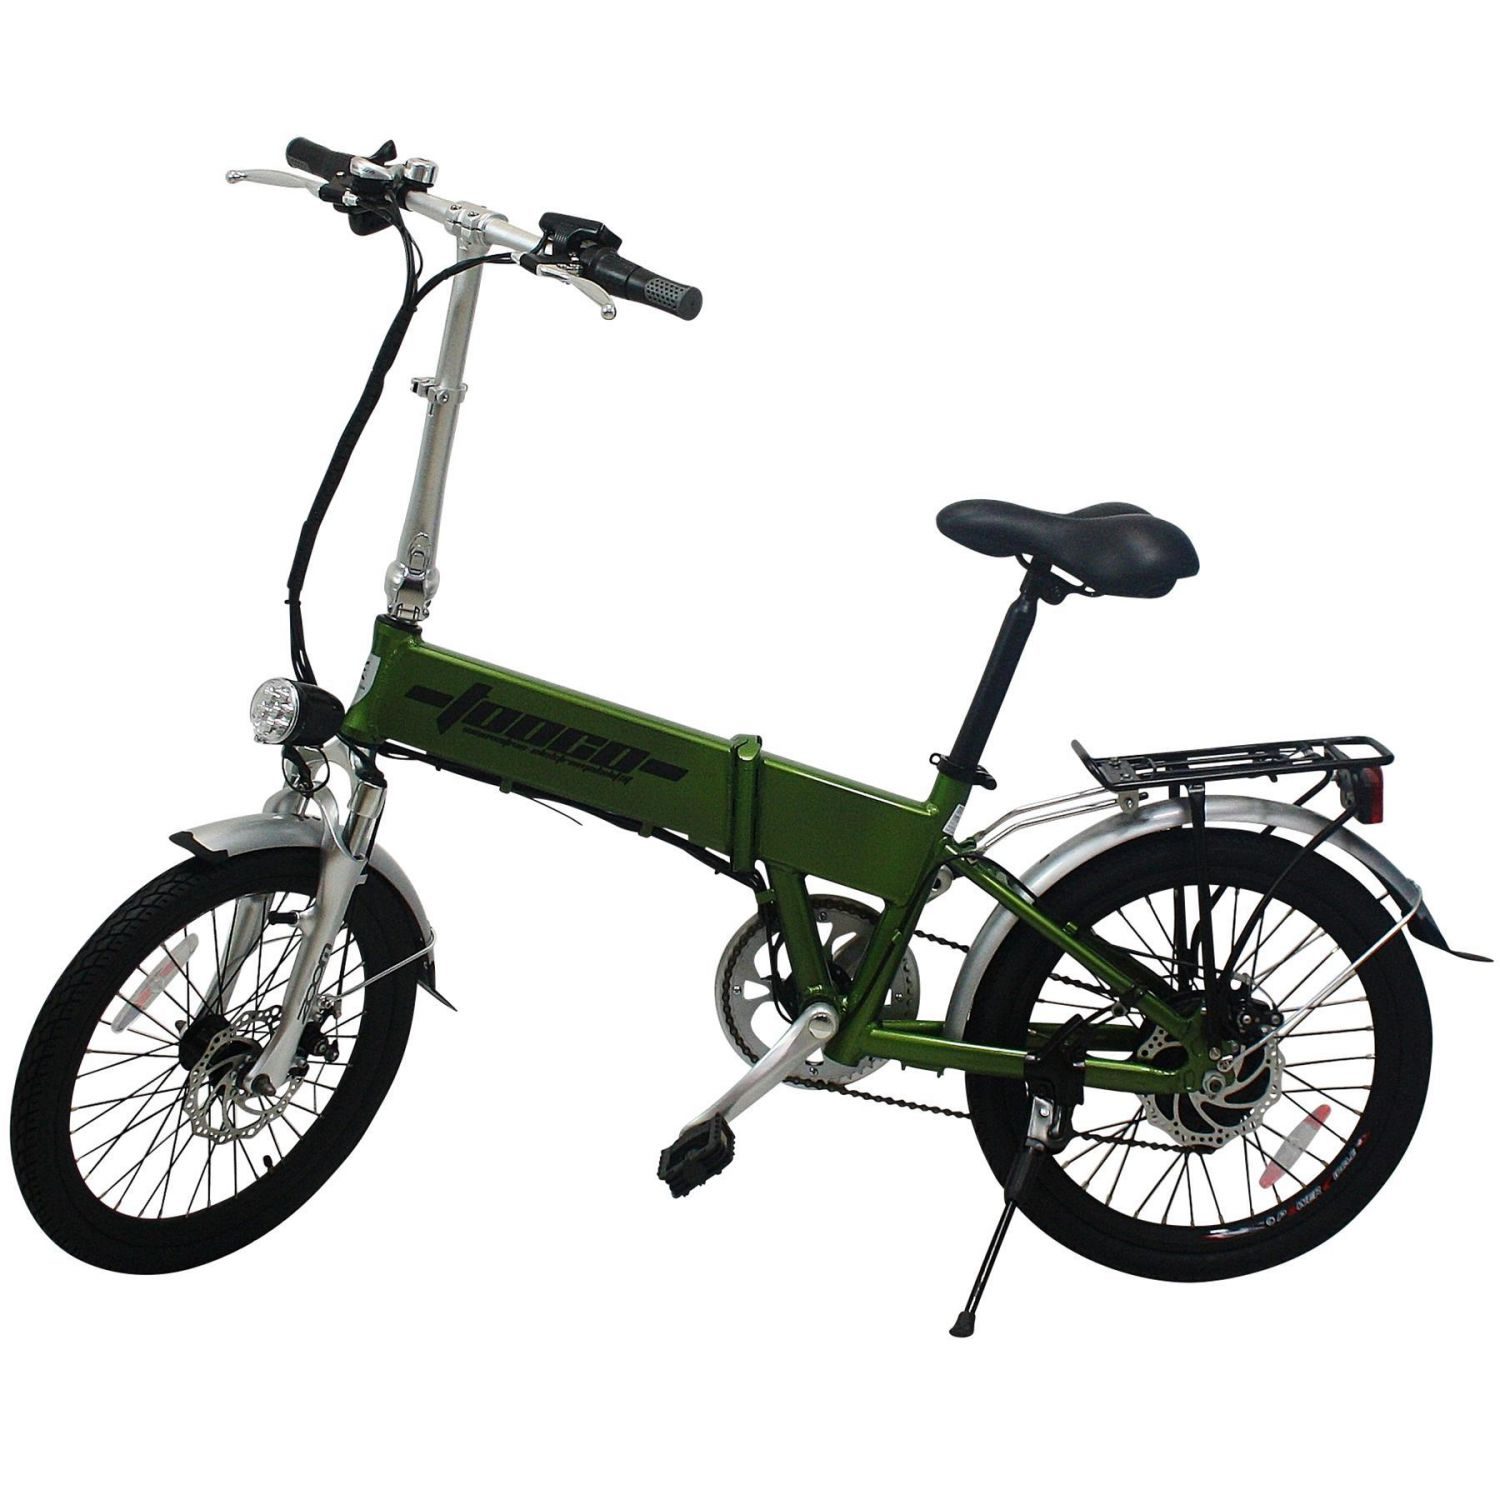 e bike elektro fahrrad faltrad 20 51cm aluminium ebike 6. Black Bedroom Furniture Sets. Home Design Ideas